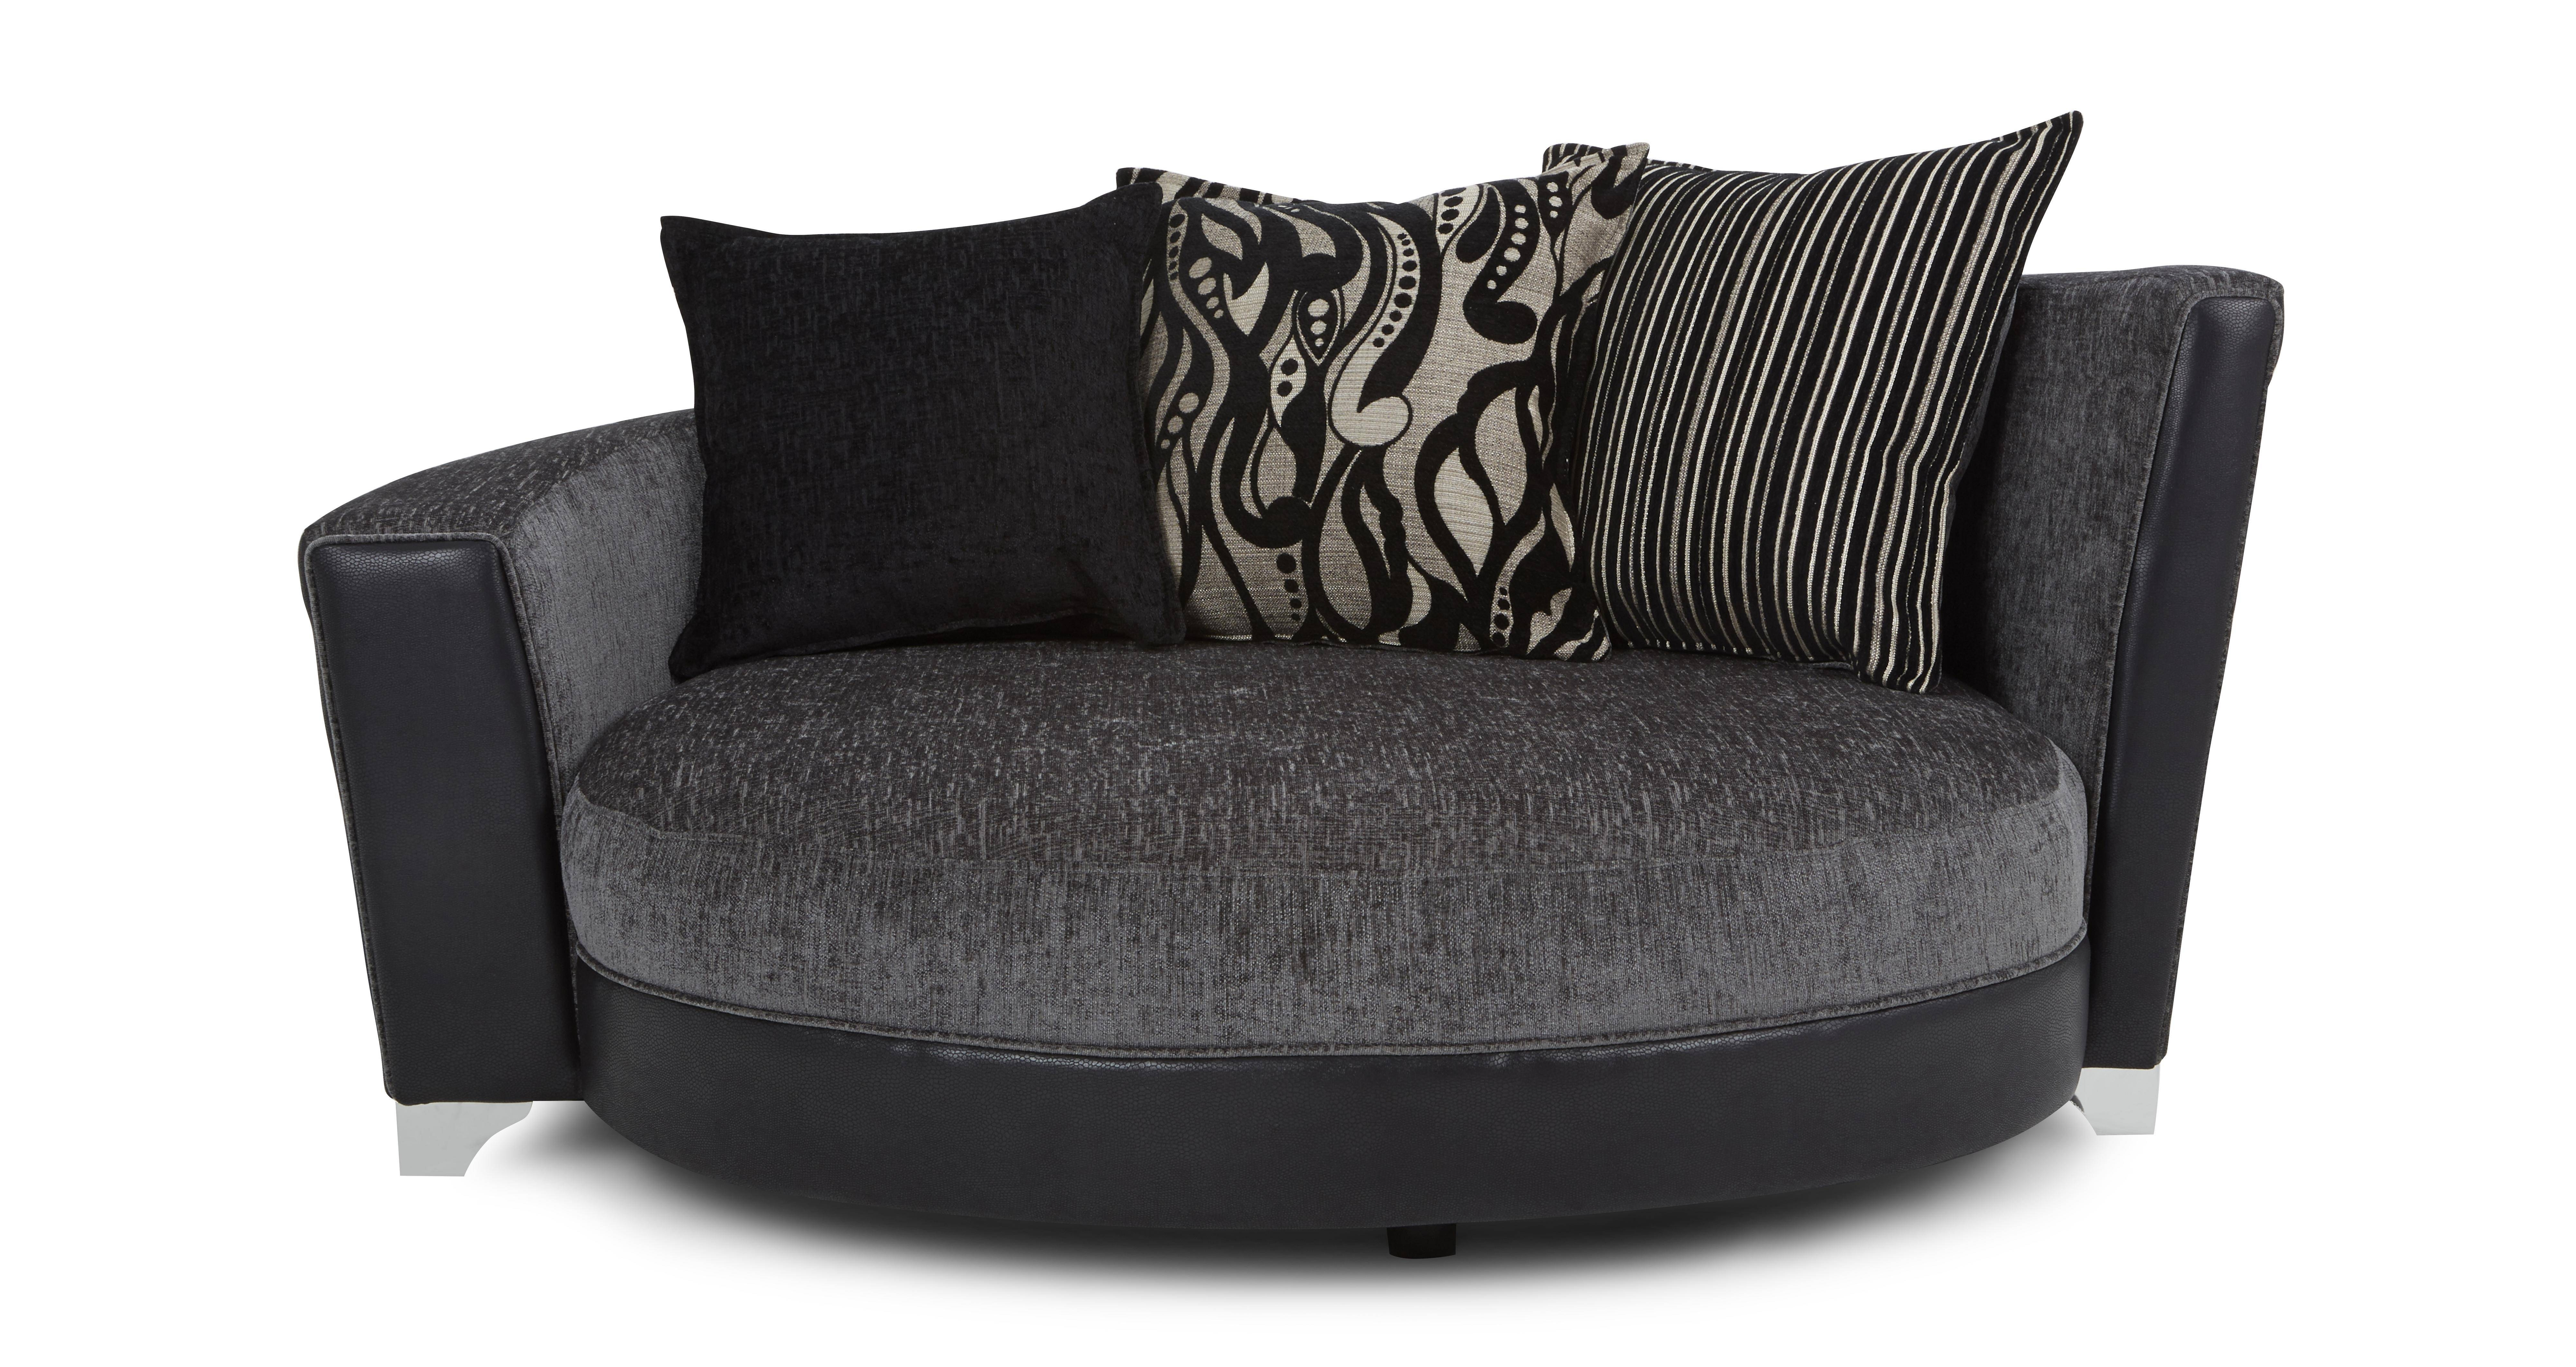 Sofas Center : 41 Formidable Swivel Sofa Chair Picture Concept in Swivel Sofa Chairs (Image 22 of 30)